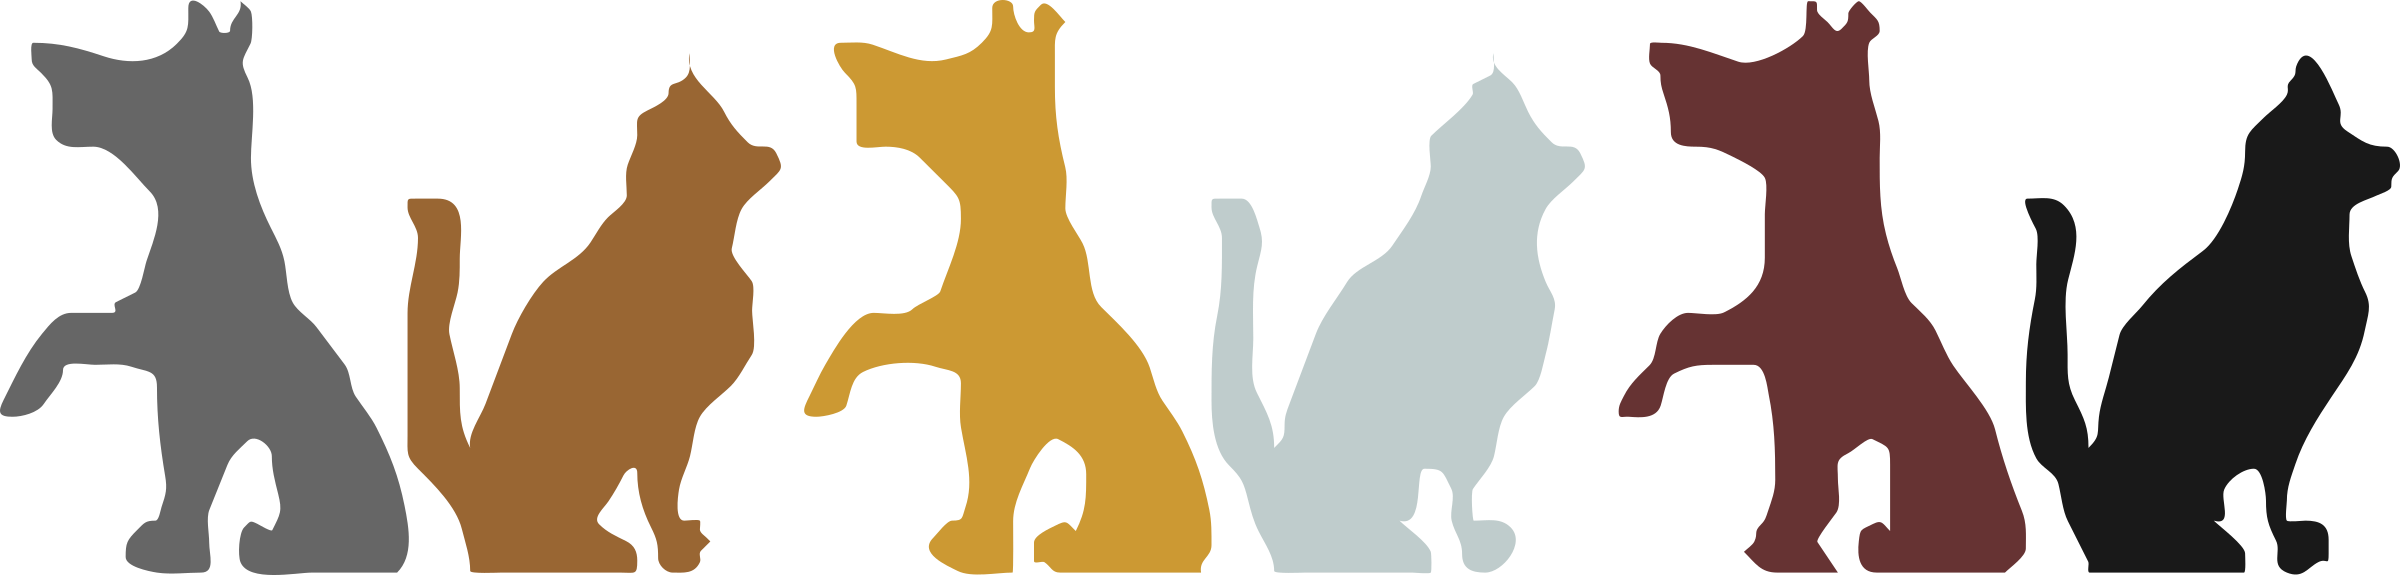 Cat And Dog Clipart Free at GetDrawings.com.